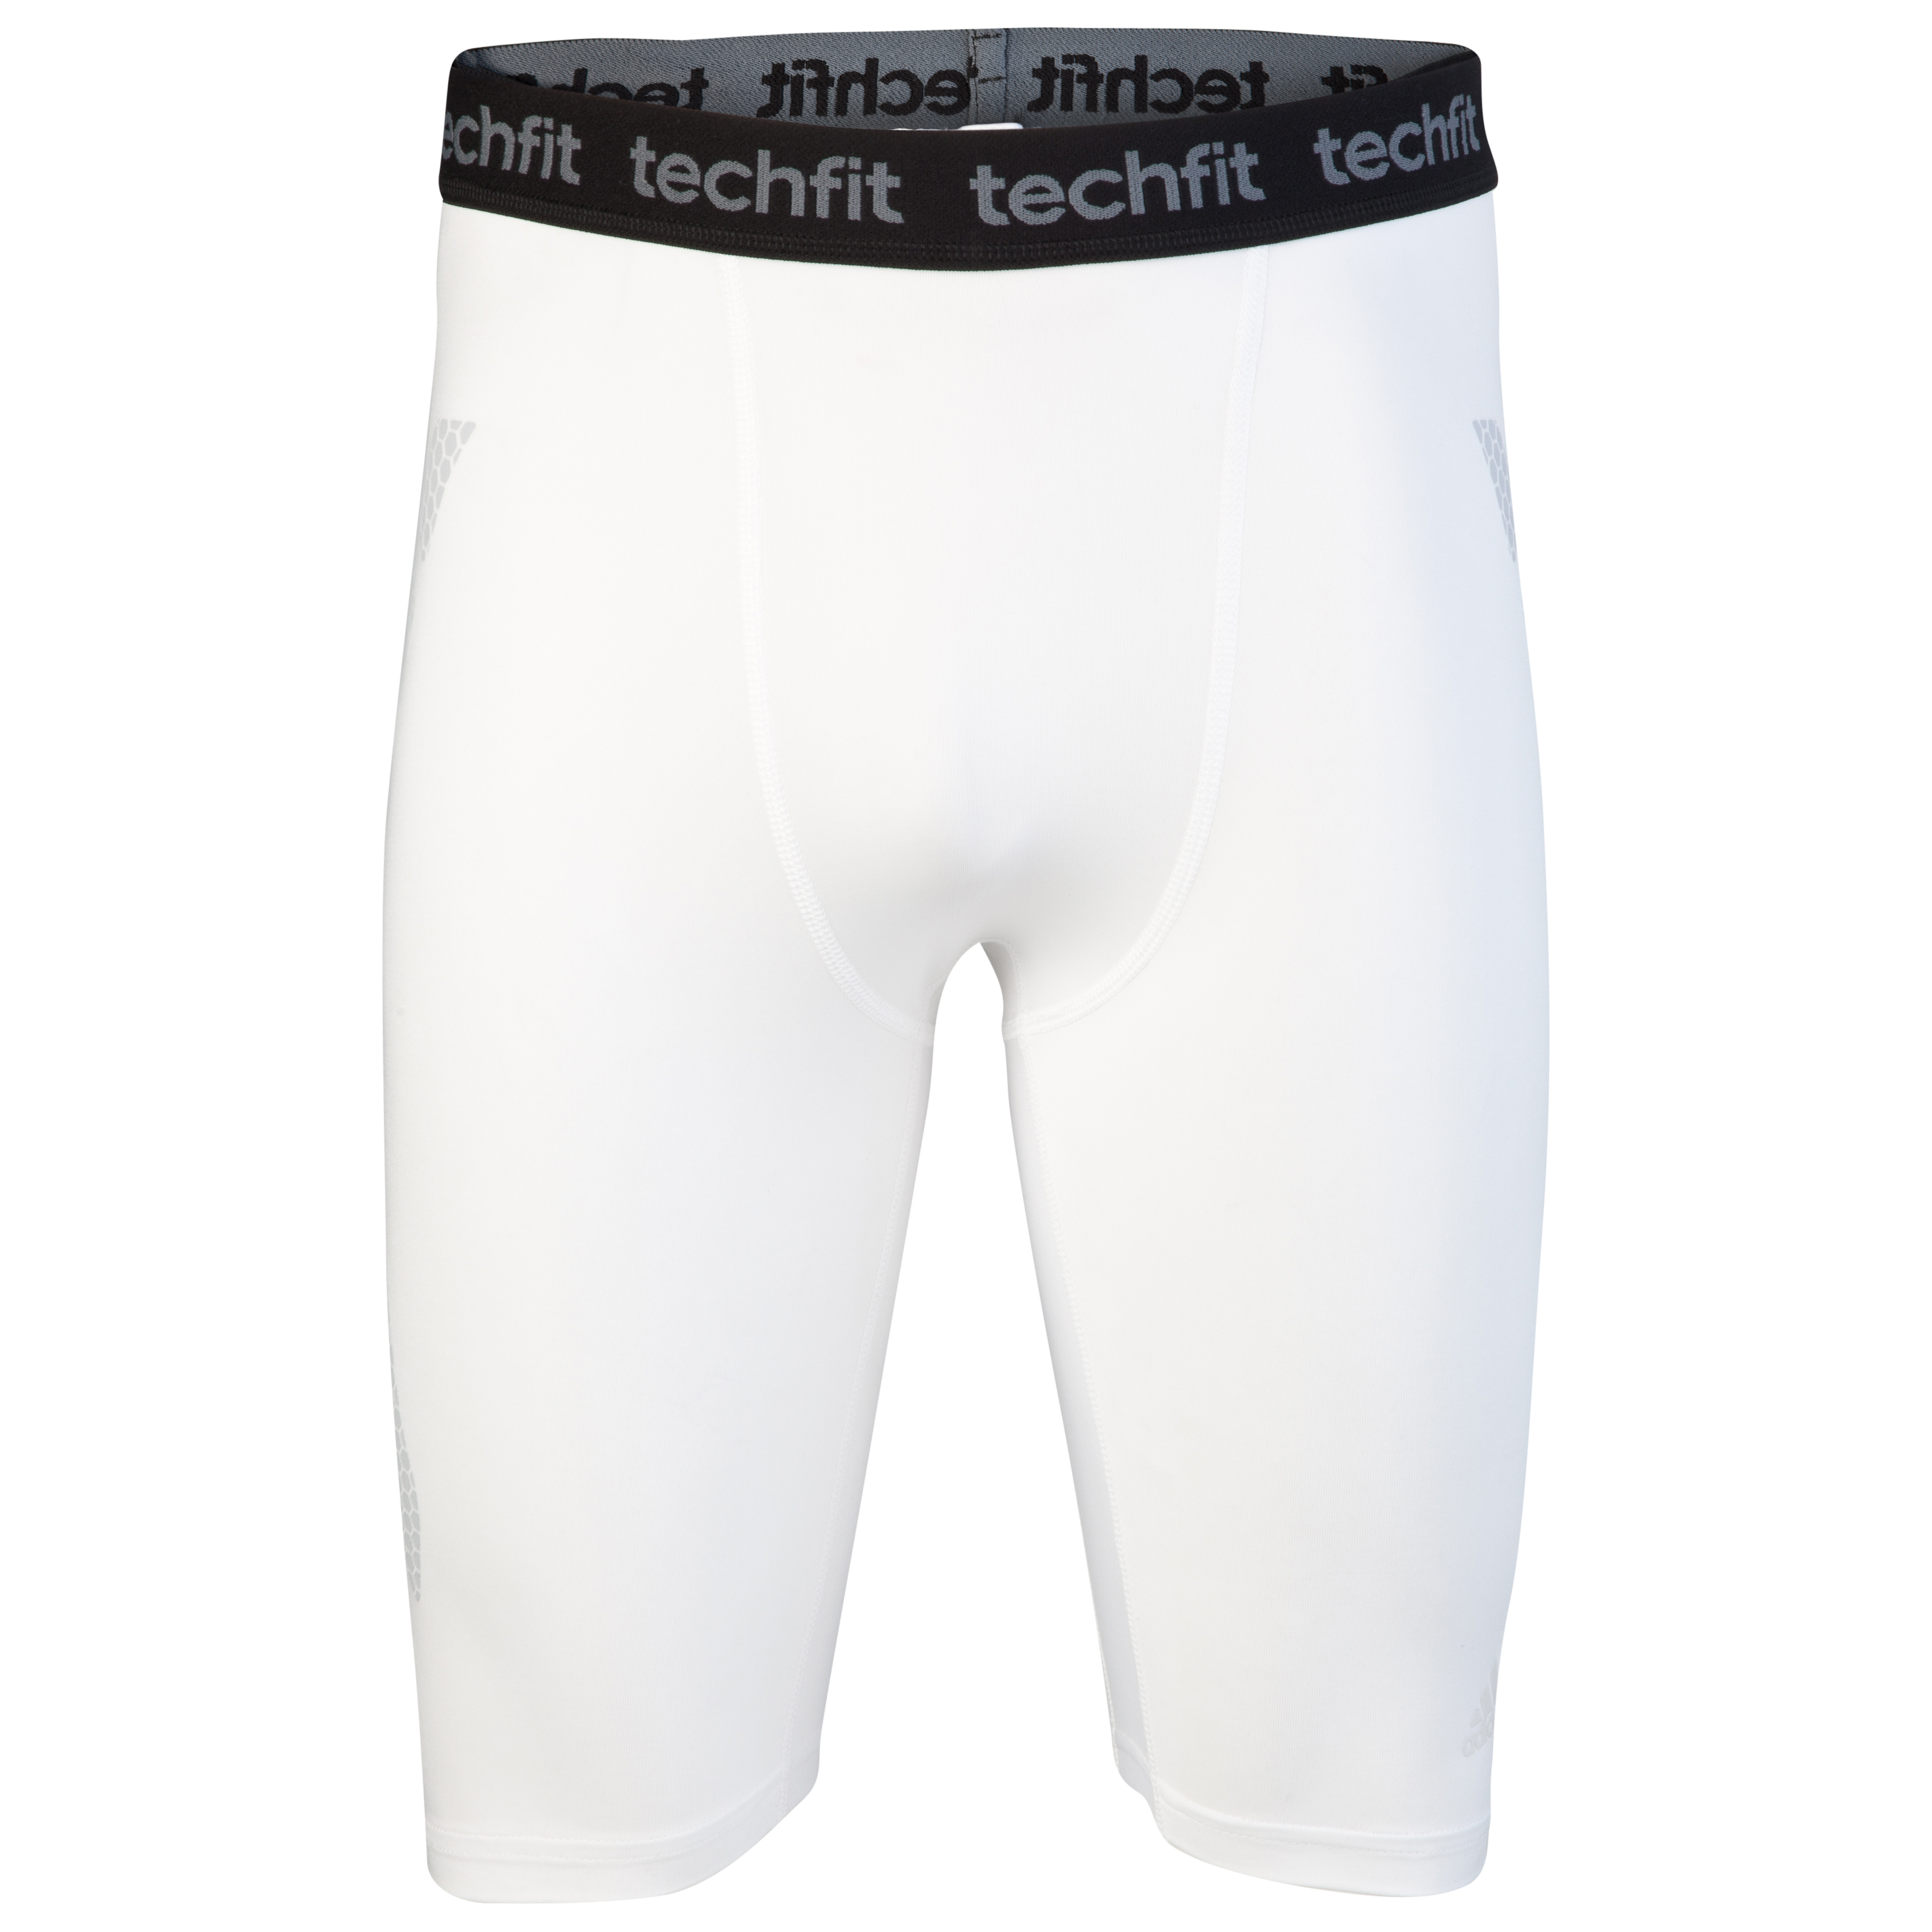 adidas TechFit Preperation Baselayer Short - White